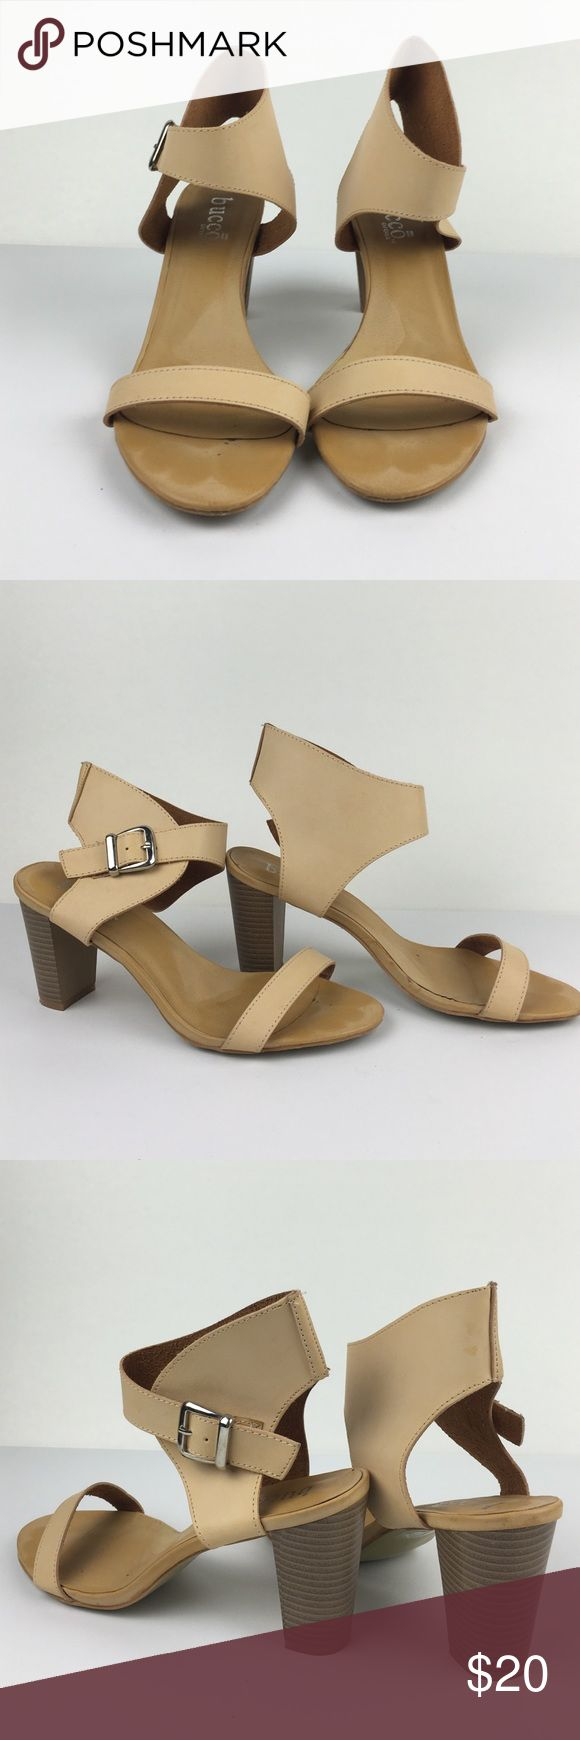 Cream Heel Sandals These are fun, stylish heels. They'd super comfortable and the ankle strap keeps your foot secure. They're slightly worn and the pictures represent the condition well. If you have any questions, just ask! Bucco Shoes Heels